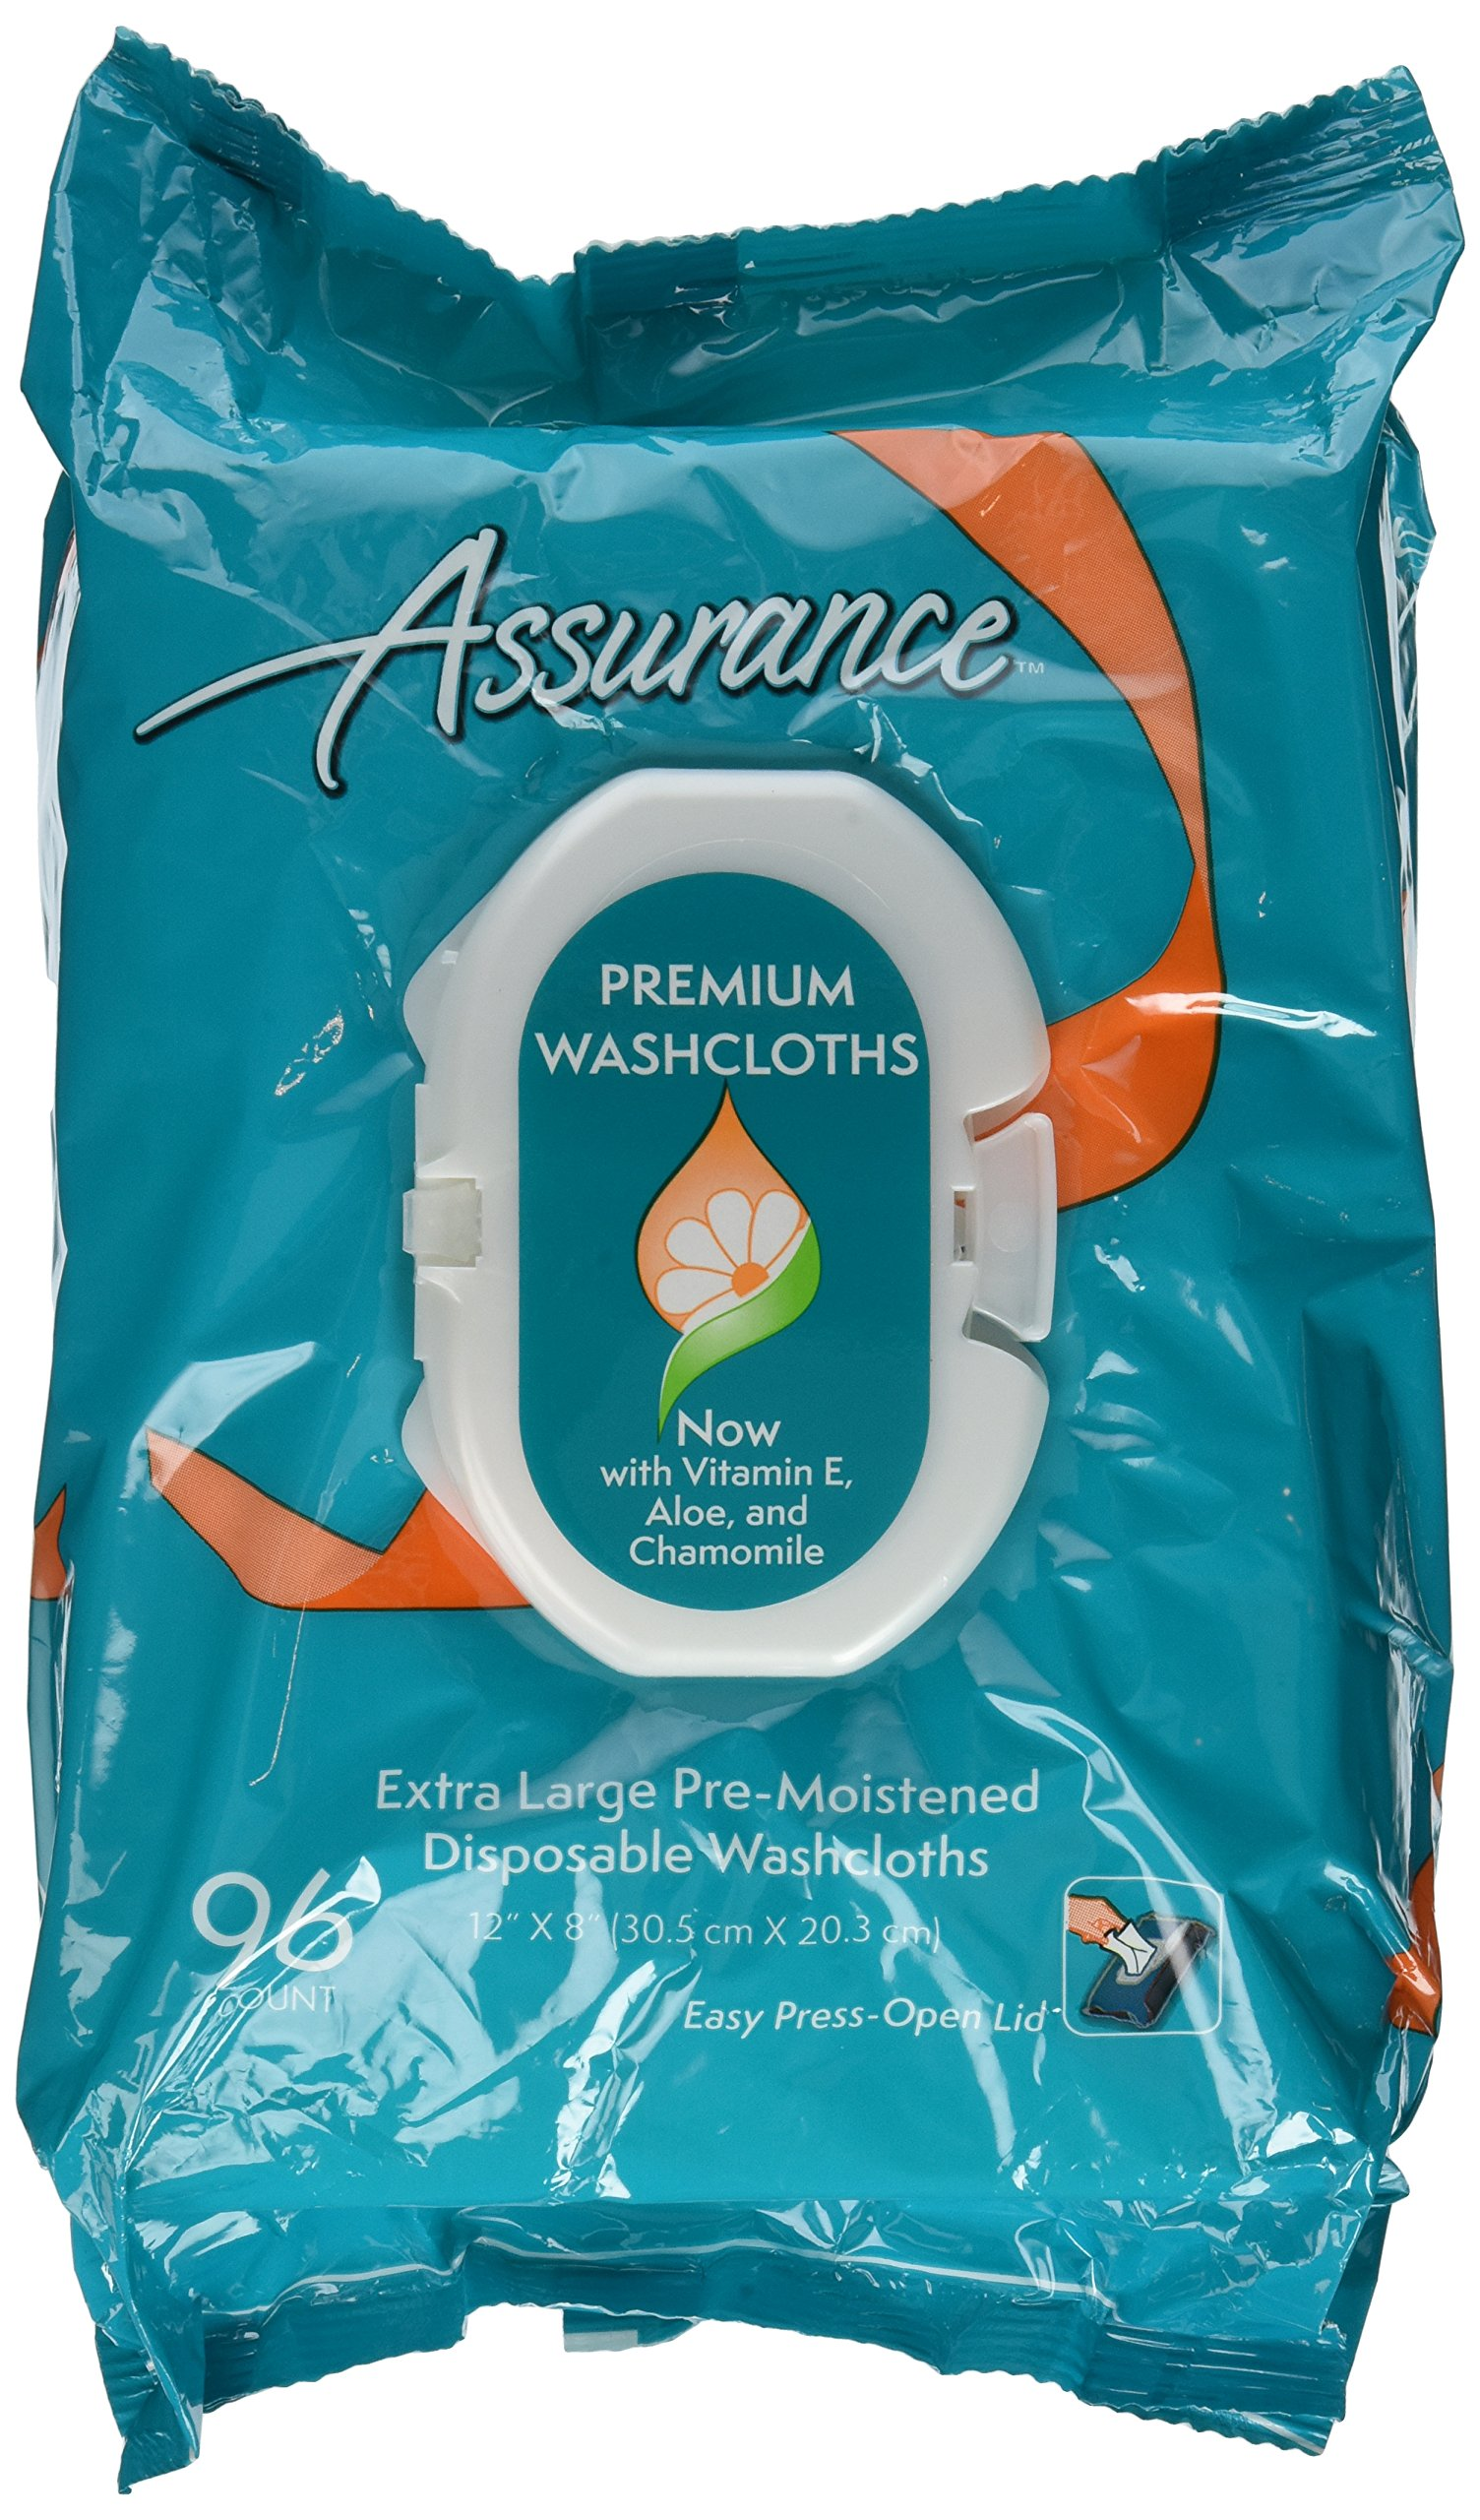 Assurance Premium Extra Large Pre-moistened Disposable Washcloths Easy Press-open Lid 96ct (2 Packs 192ct Total)